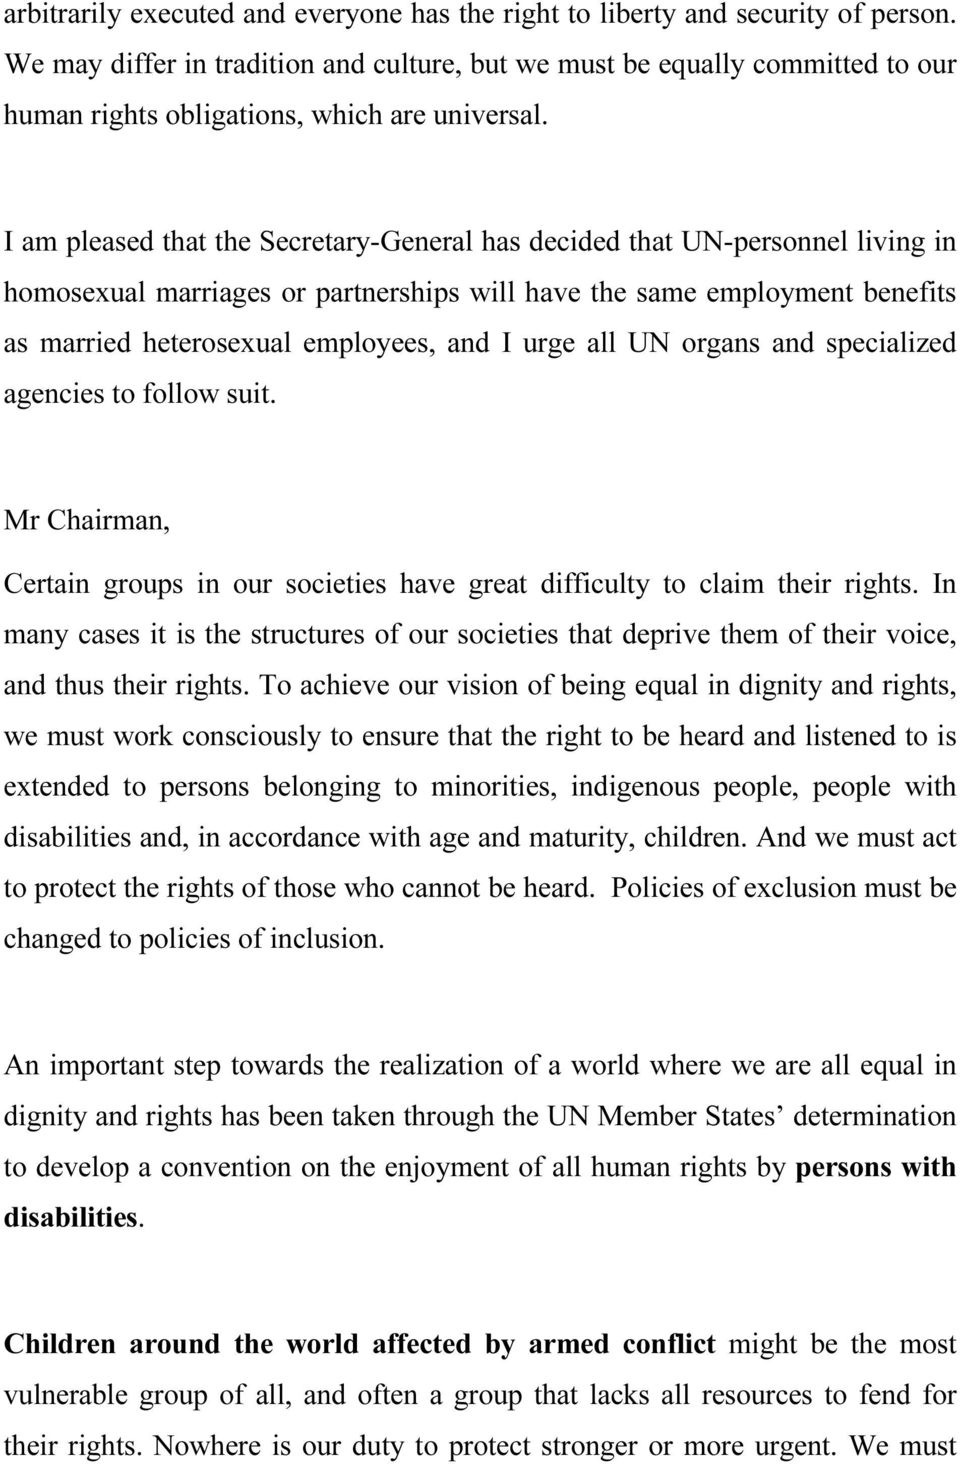 I am pleased that the Secretary-General has decided that UN-personnel living in homosexual marriages or partnerships will have the same employment benefits as married heterosexual employees, and I